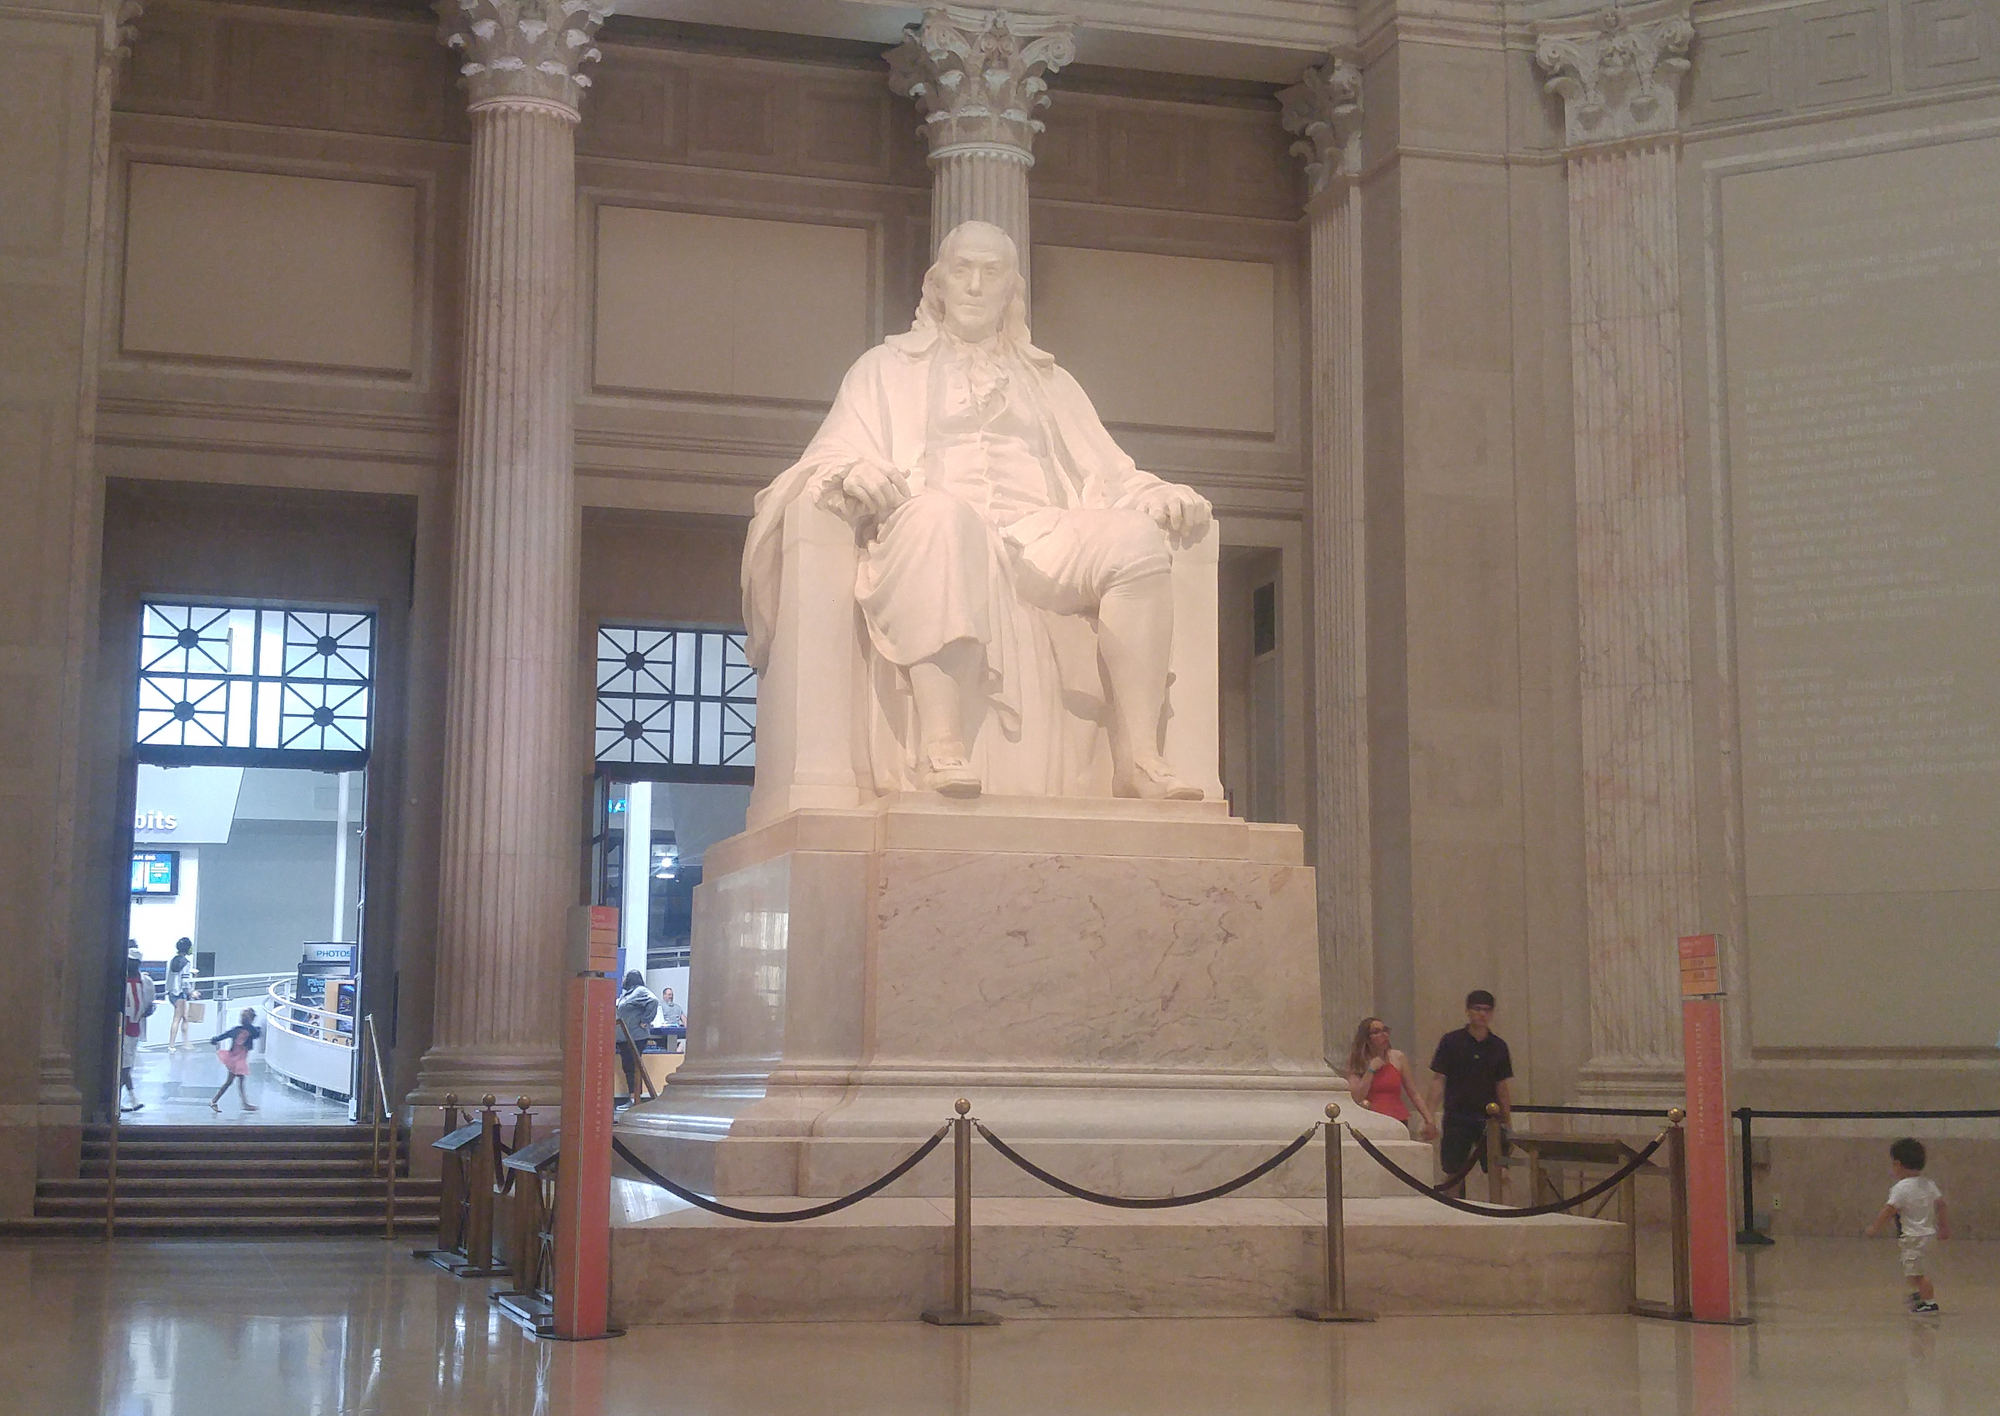 Visiting the Franklin Institute in Philadelphia